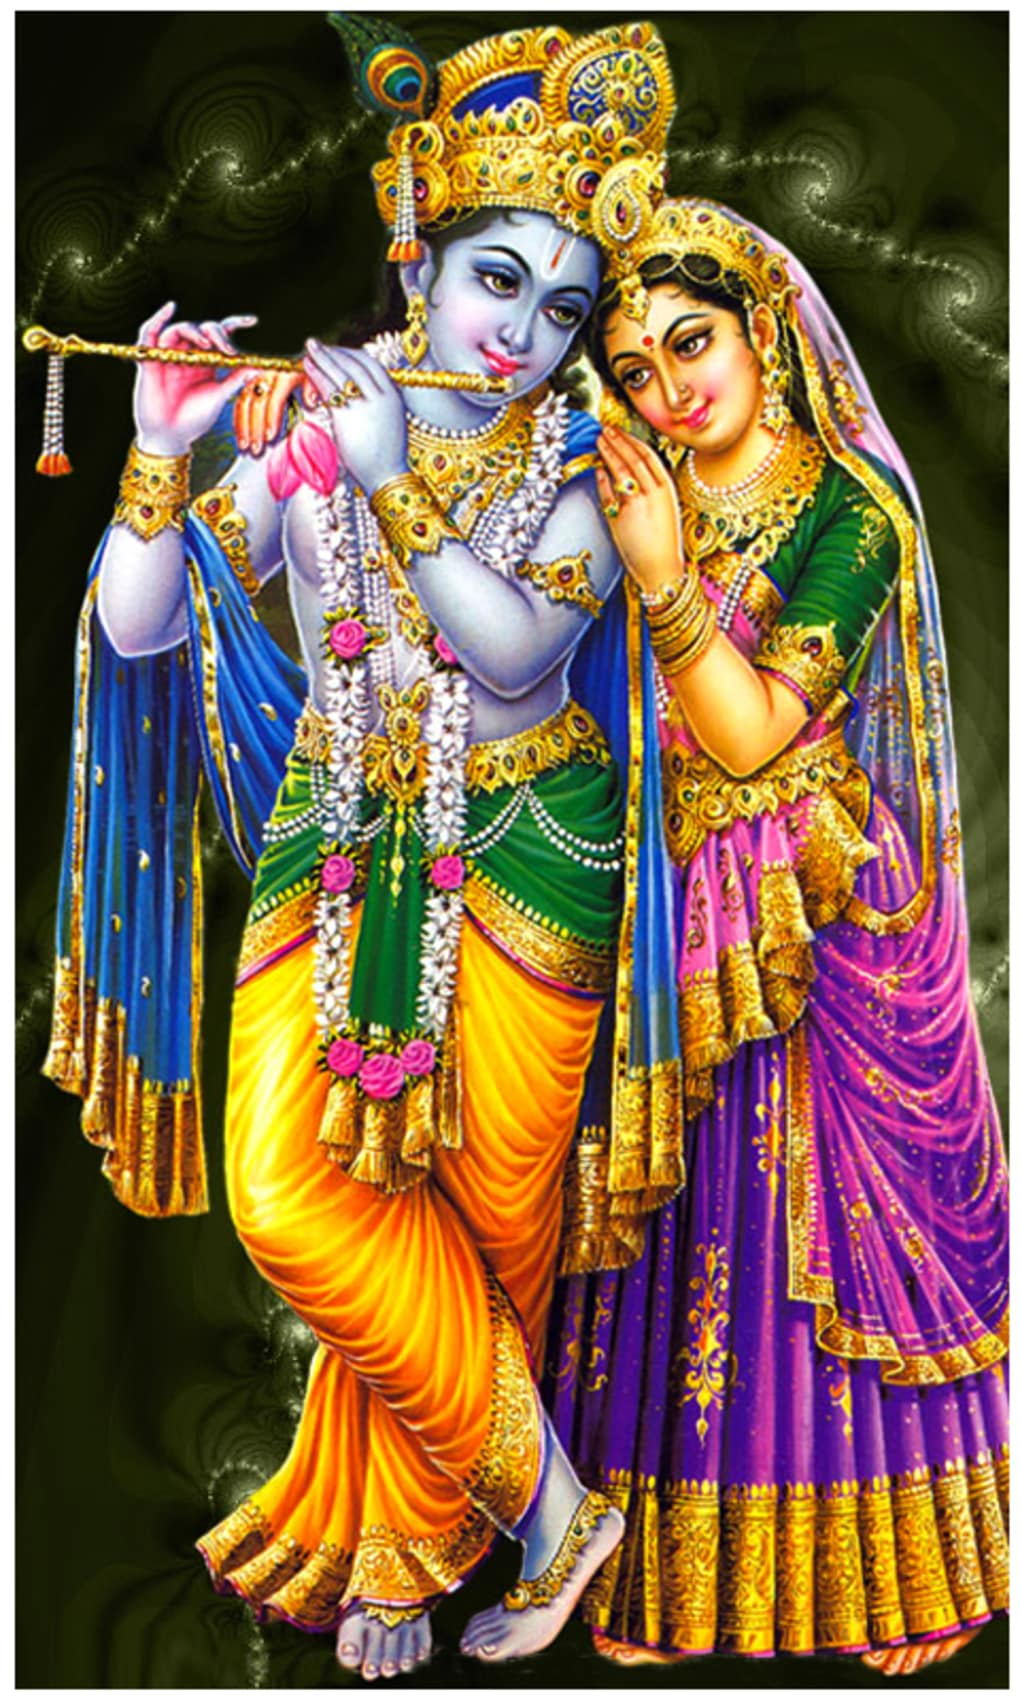 sri krishna god live wallpaper screenshot